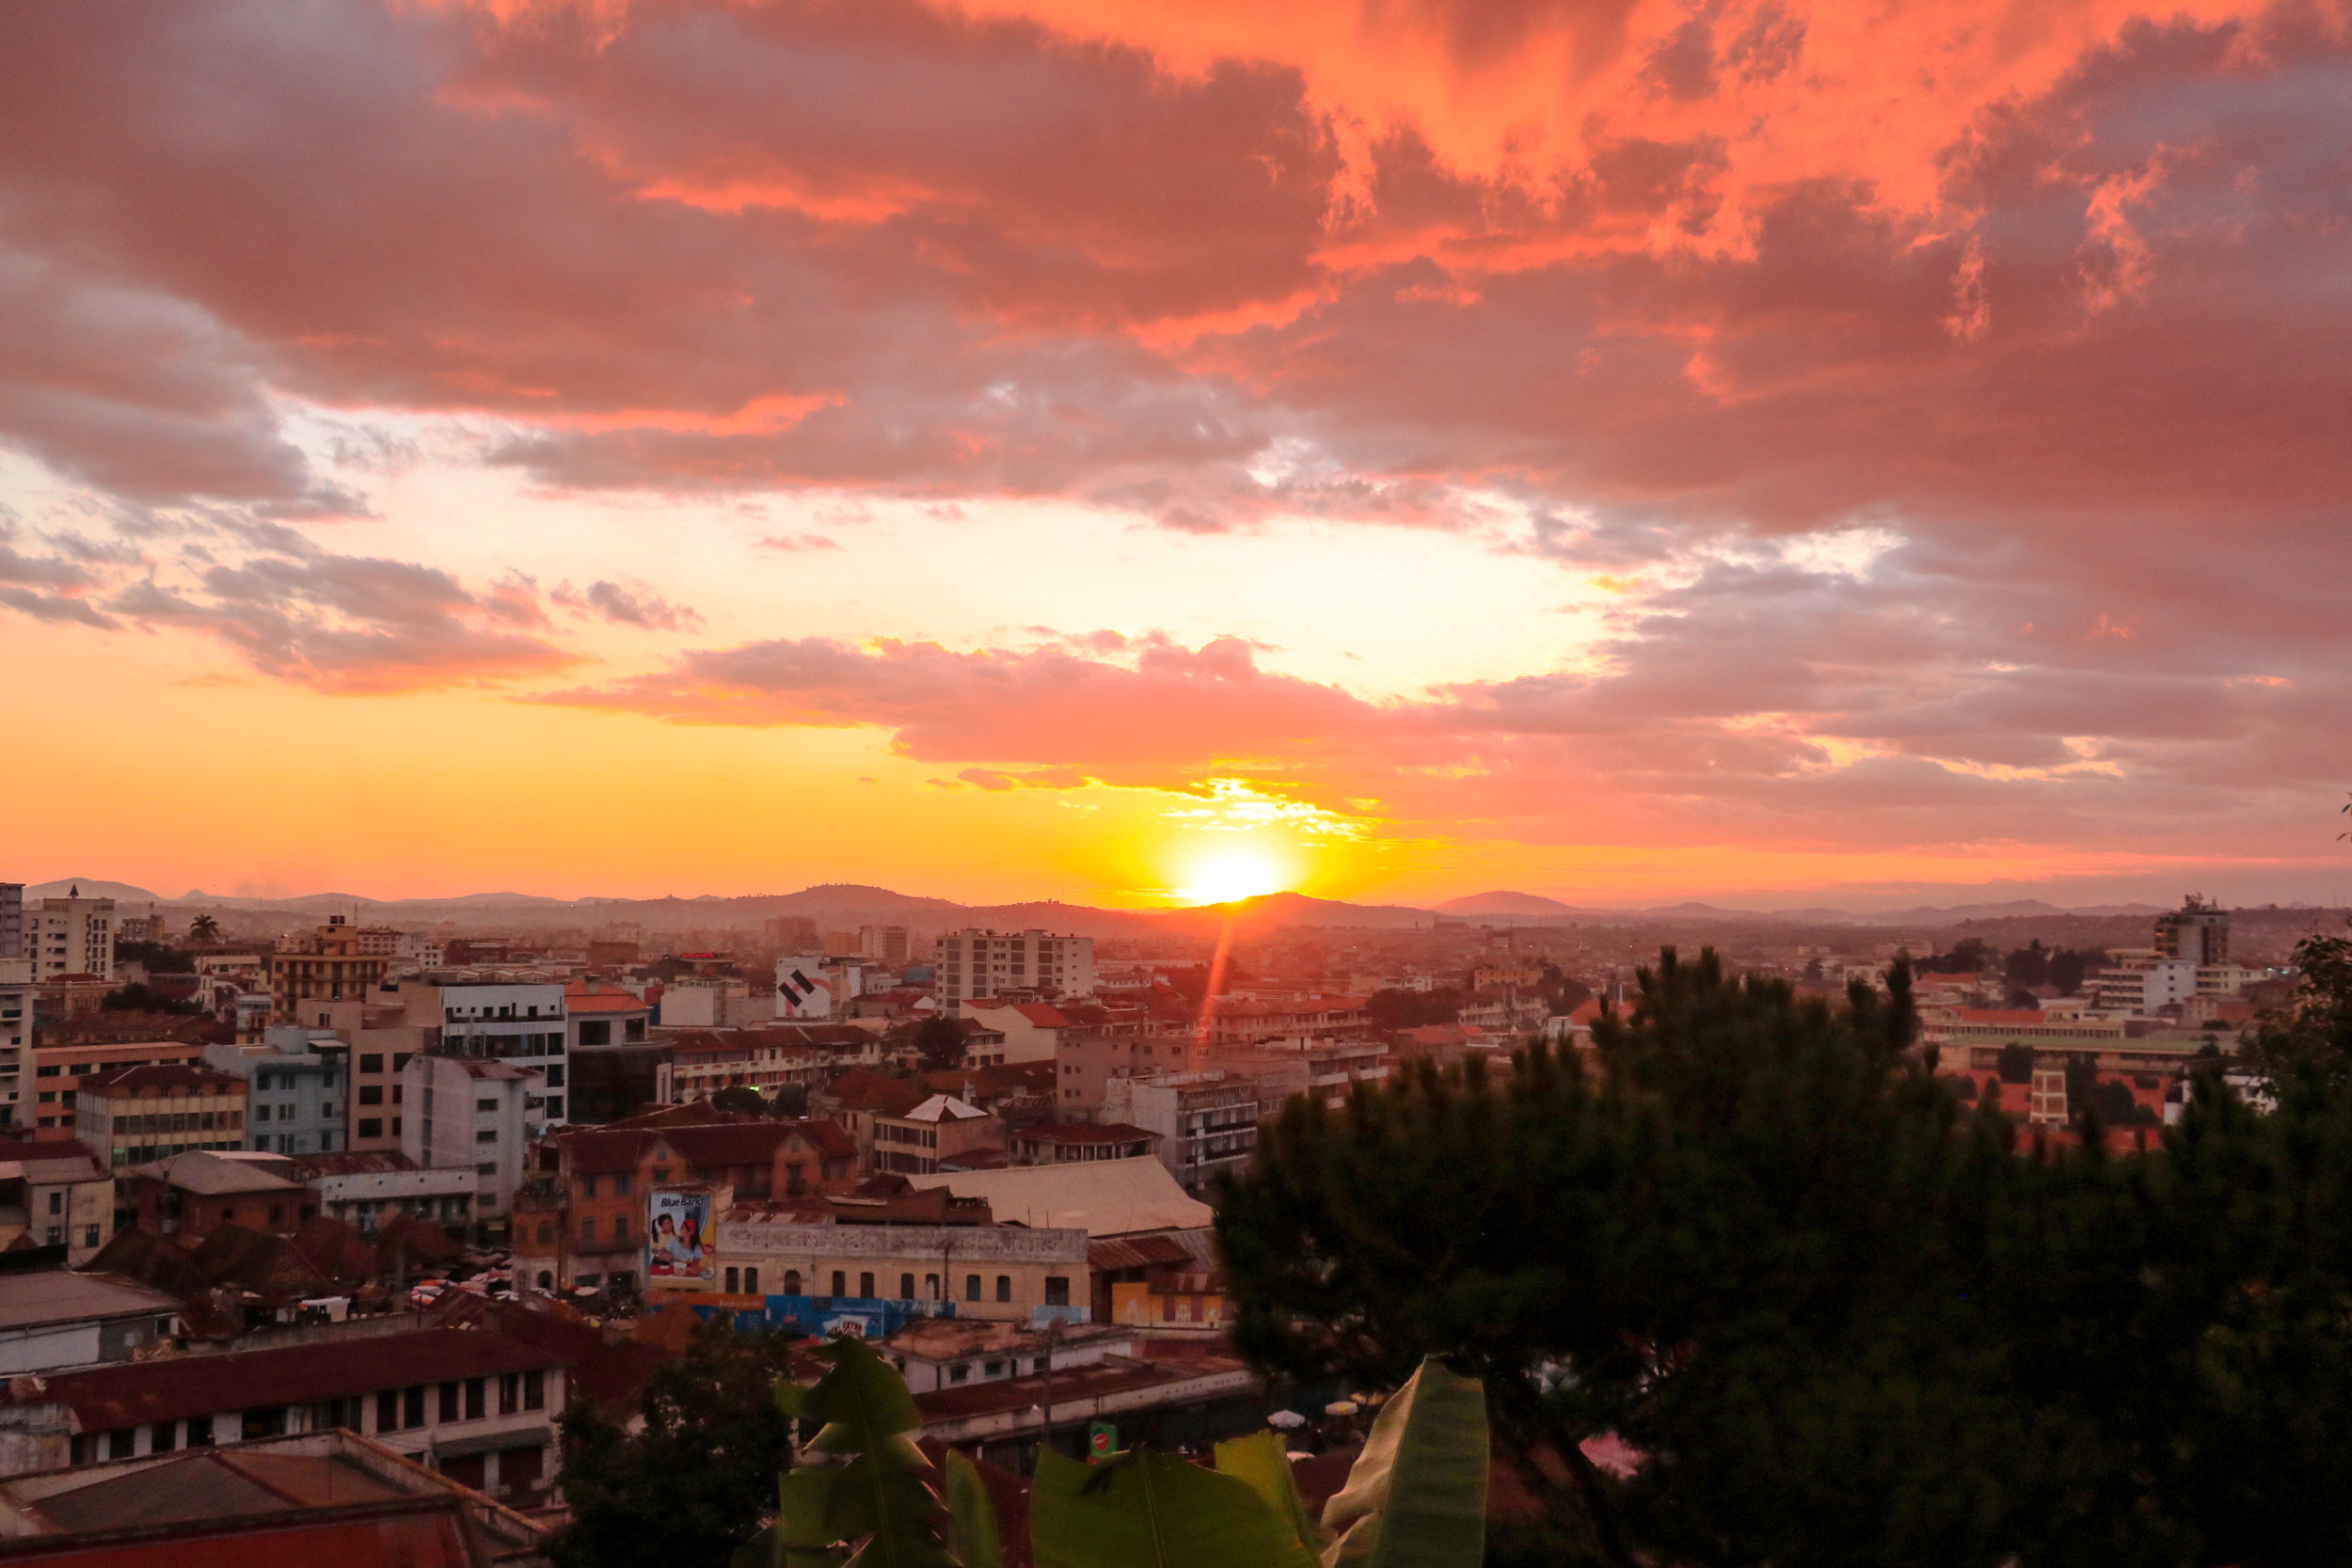 Sunset on our first night in Antananarivo, Madagascar © Mora Mora Photography